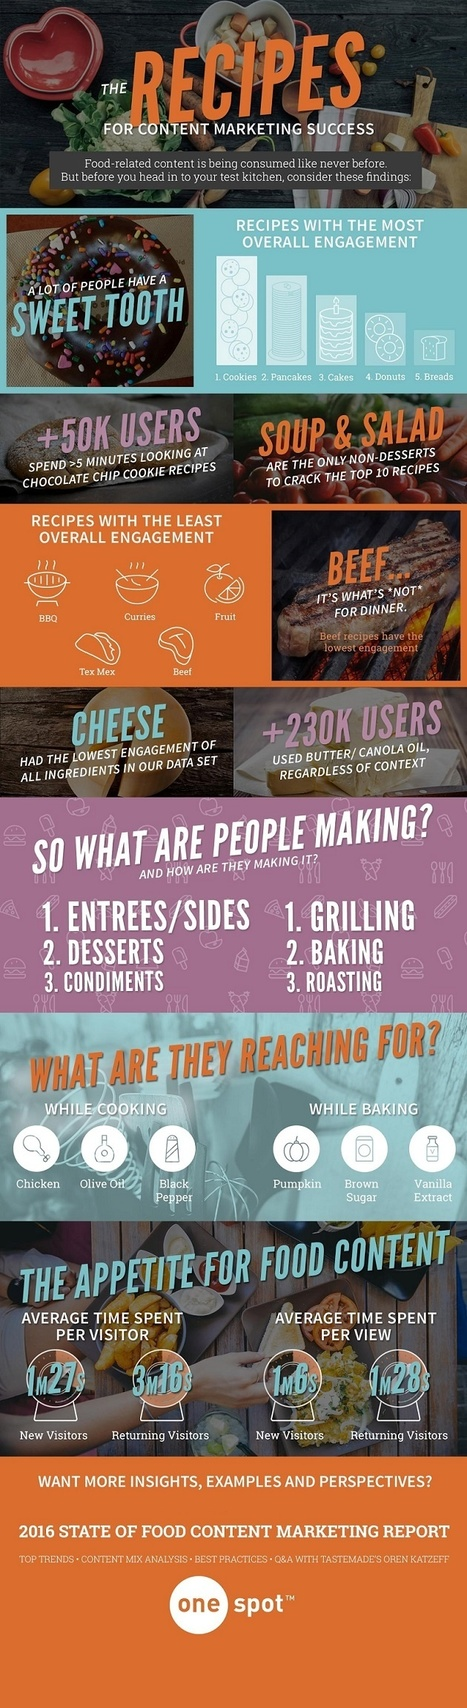 The Recipes for Content Marketing Success #Infographic | Redacción web | Scoop.it